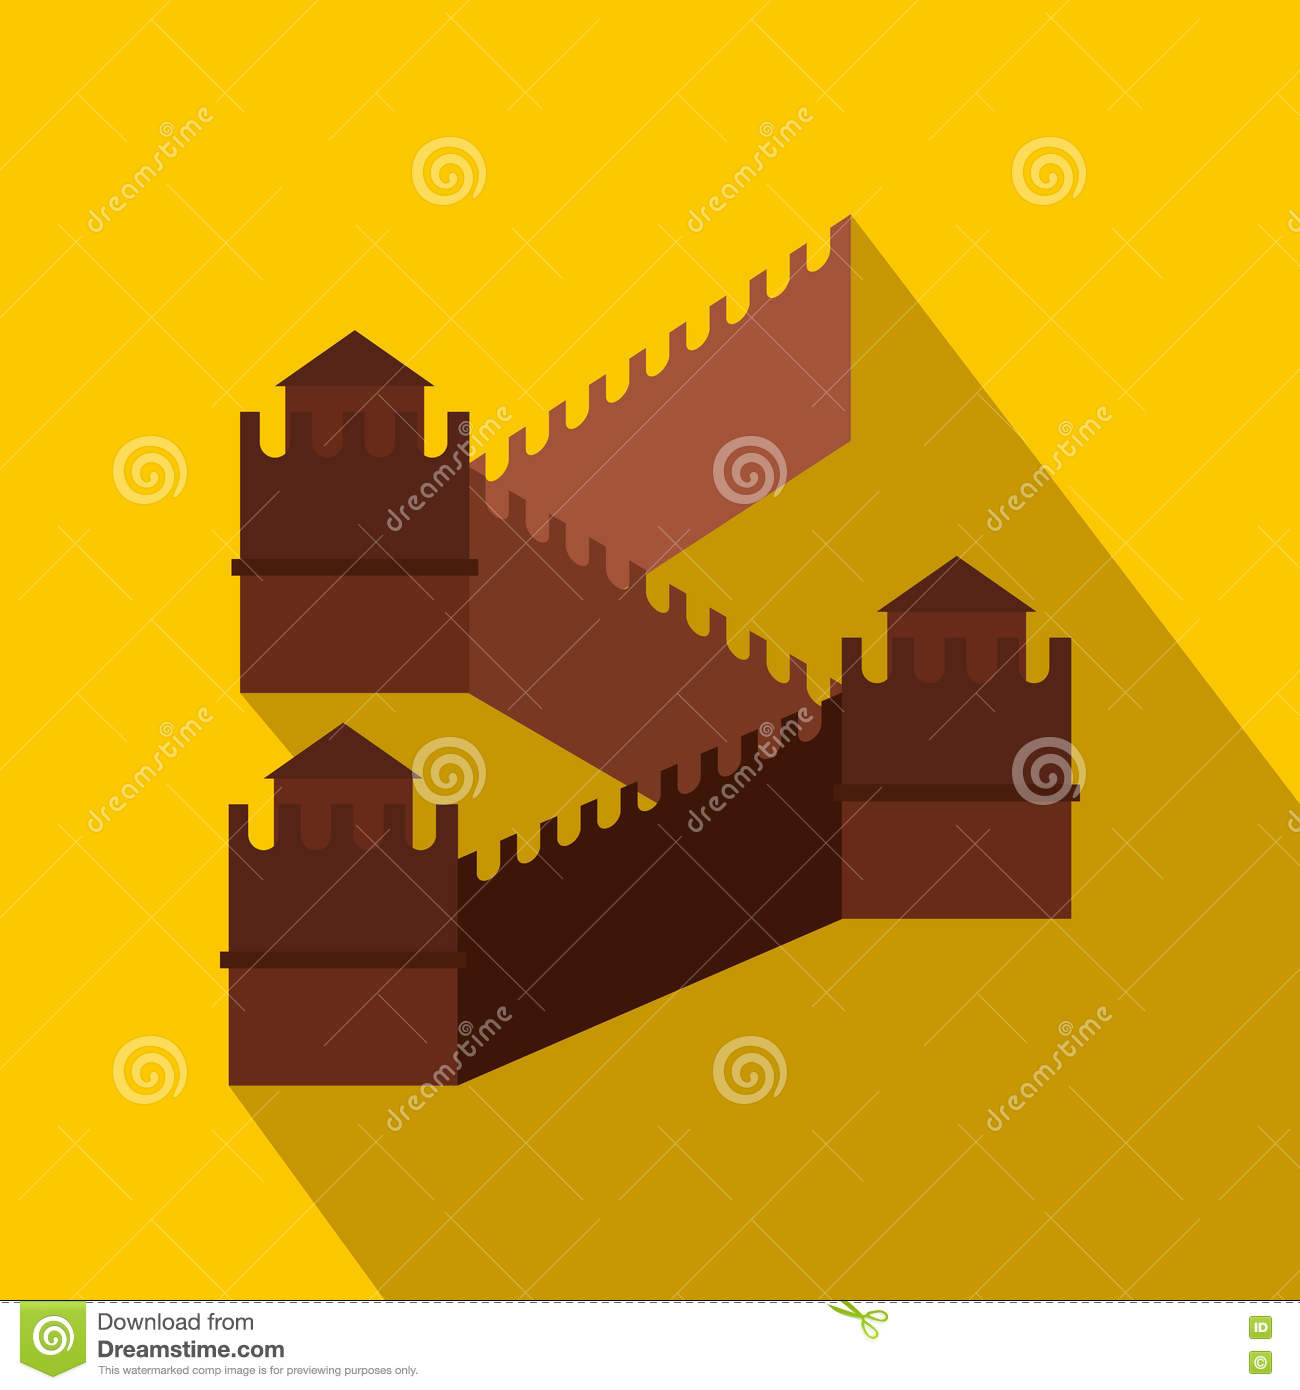 Great Wall of China icon, flat style